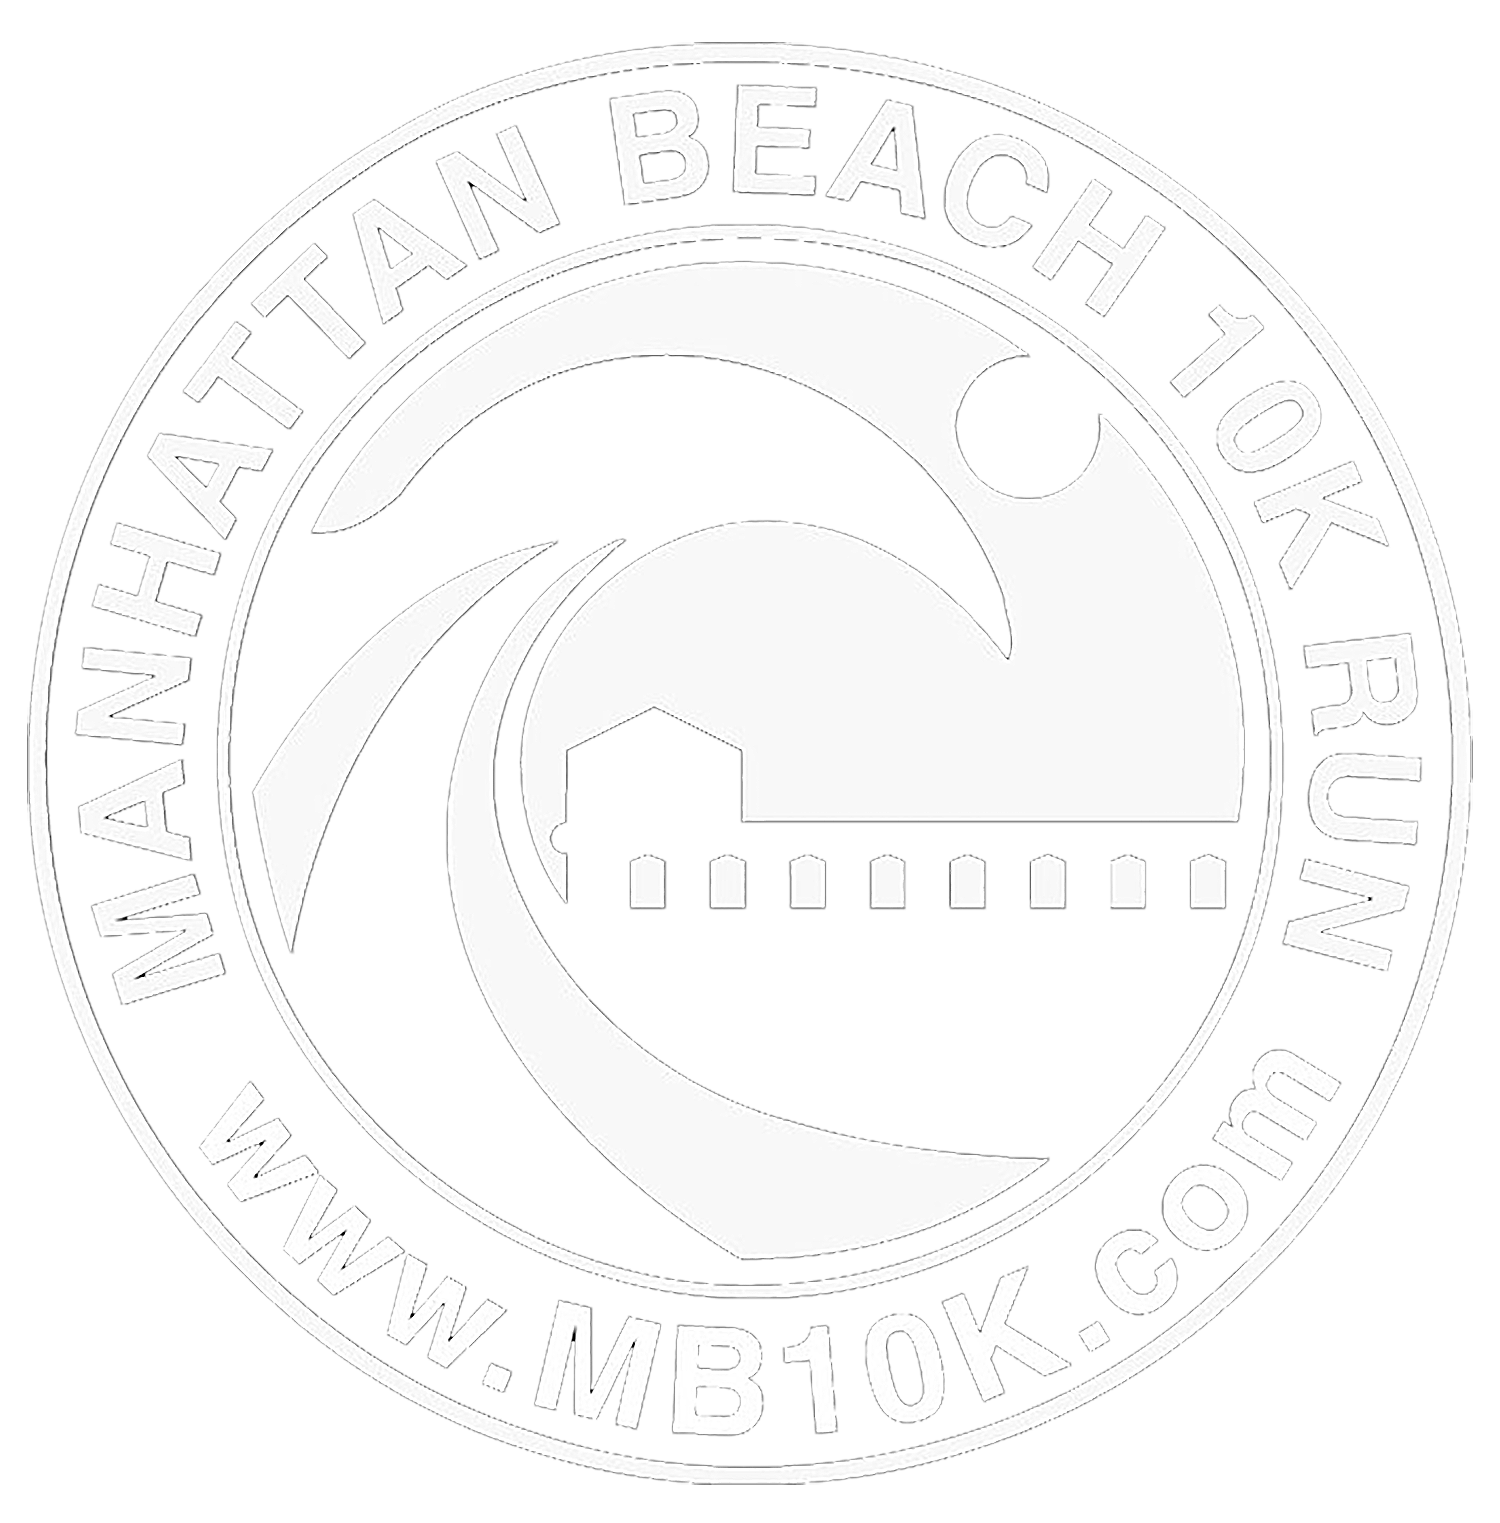 Manhattan Beach 10K Run